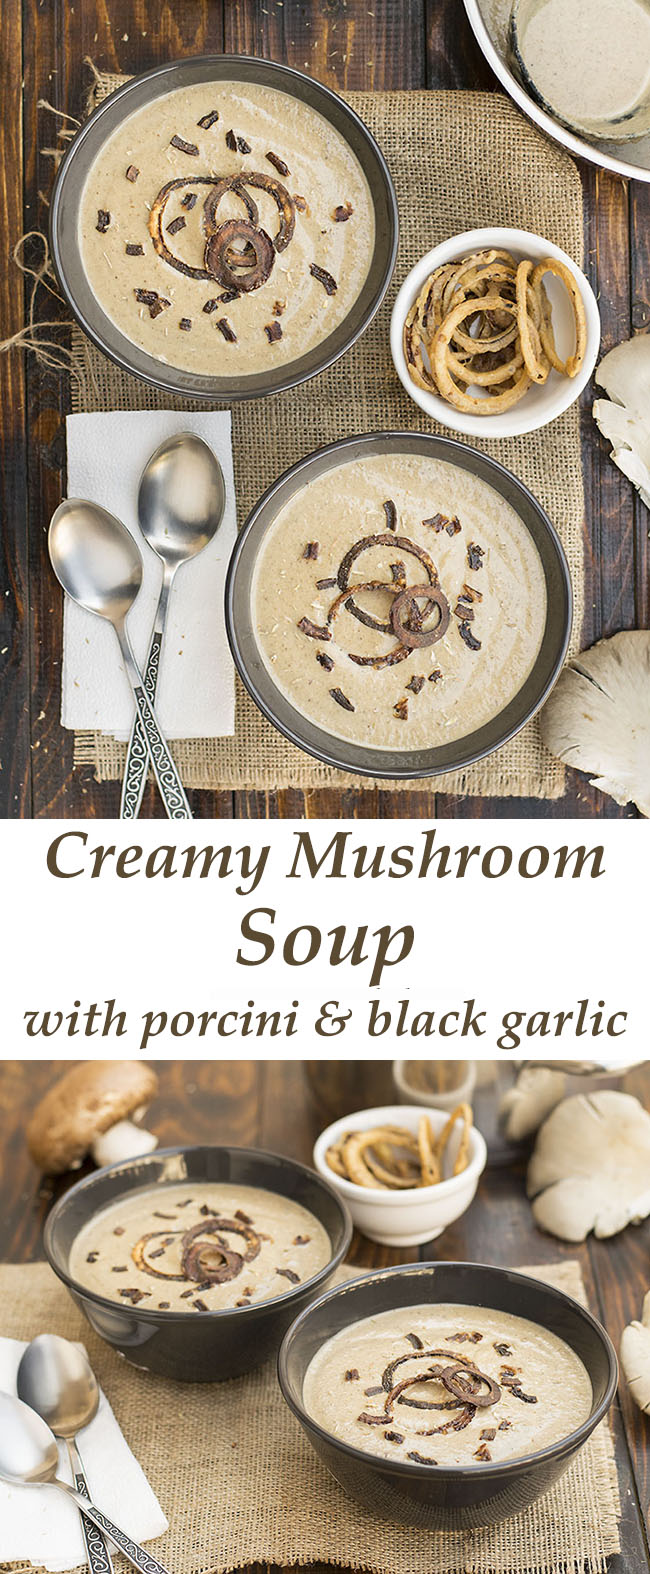 Creamy Italian mushroom soup with black garlic and porcini